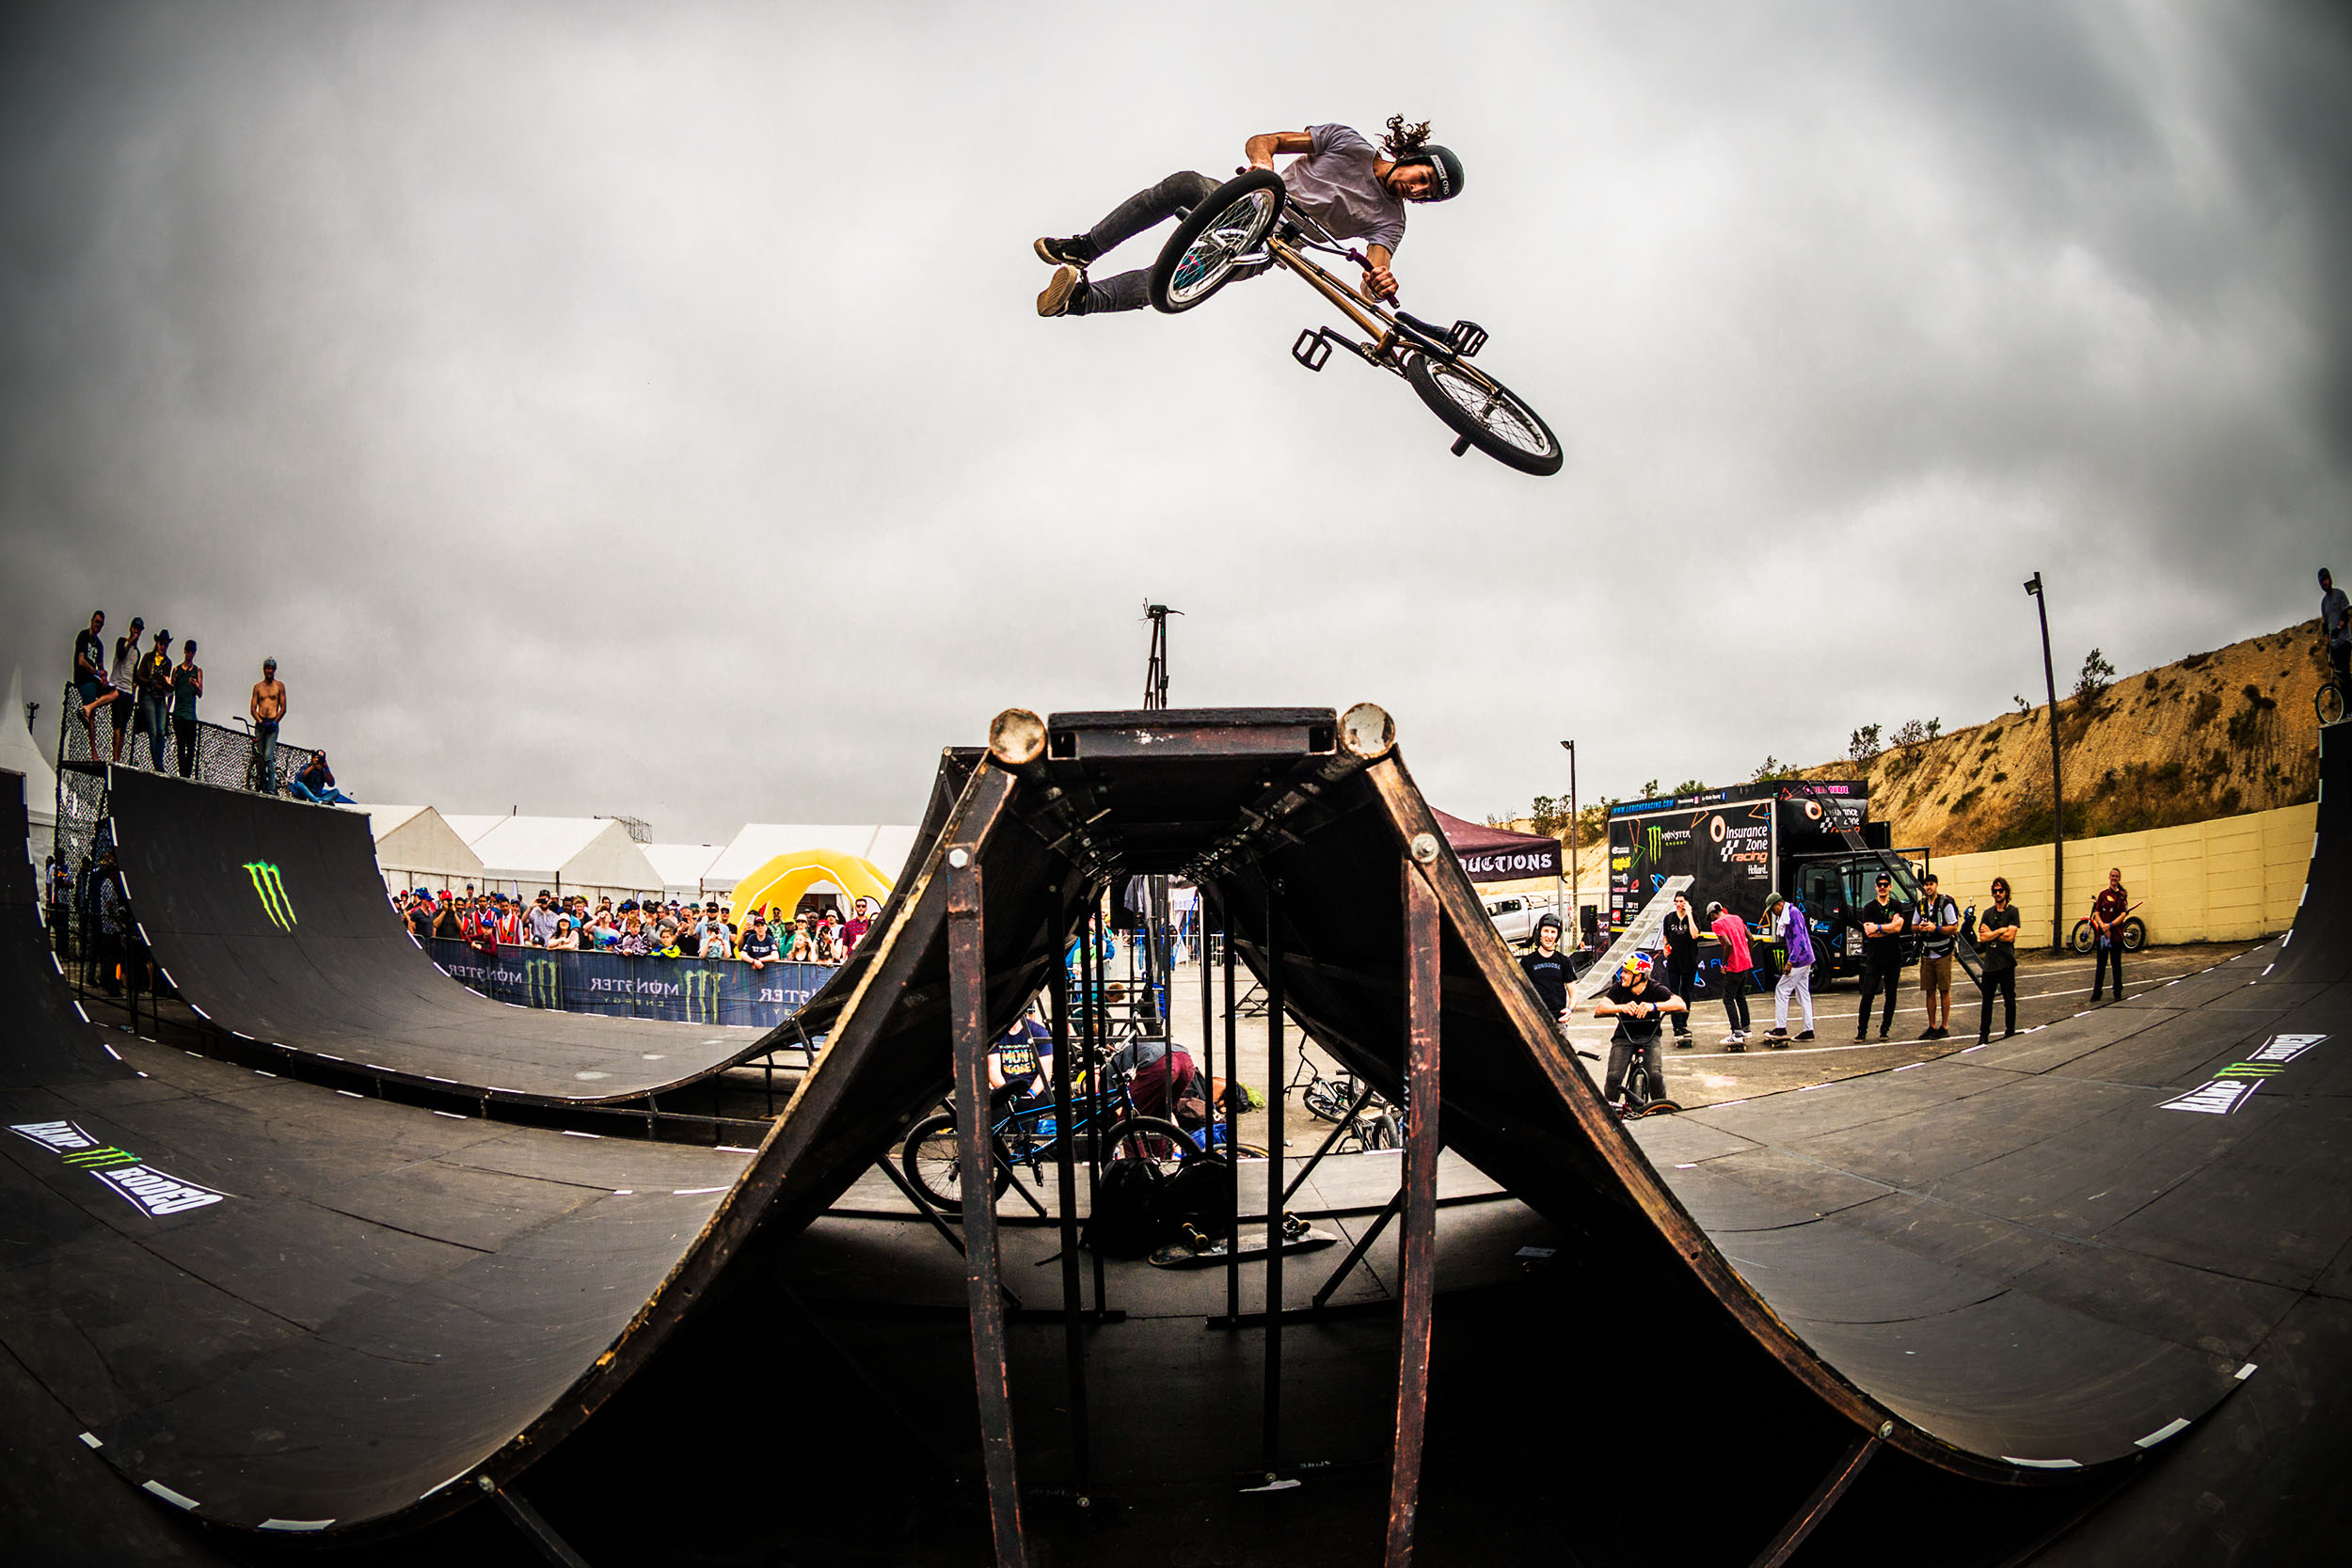 Vincent Leygonie riding his way to victory in the BMX final at stop 2 of the Ramp Rodeo